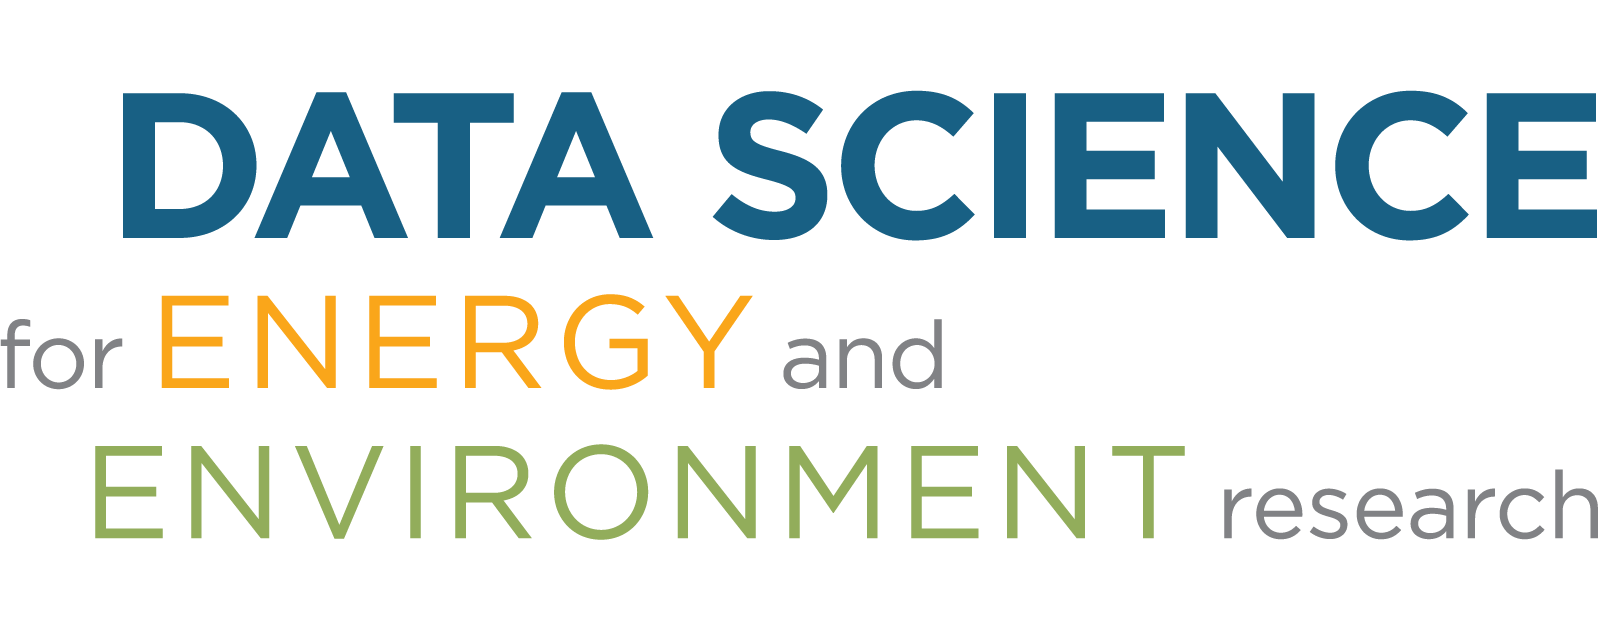 Data Science for Energy and Environment